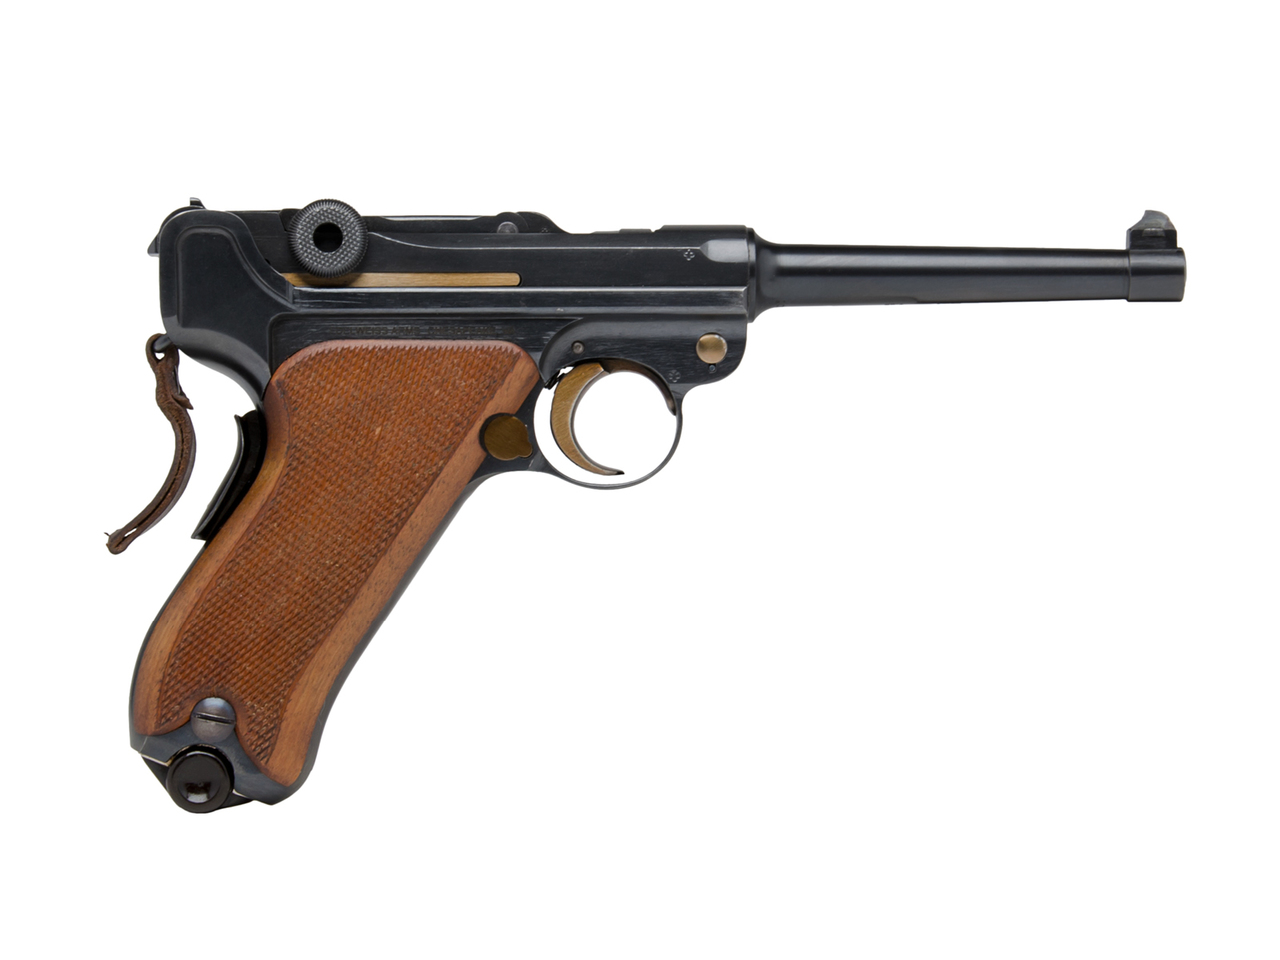 Swiss Luger 06/24 - $2195 (06/24-20136) - Edelweiss Arms